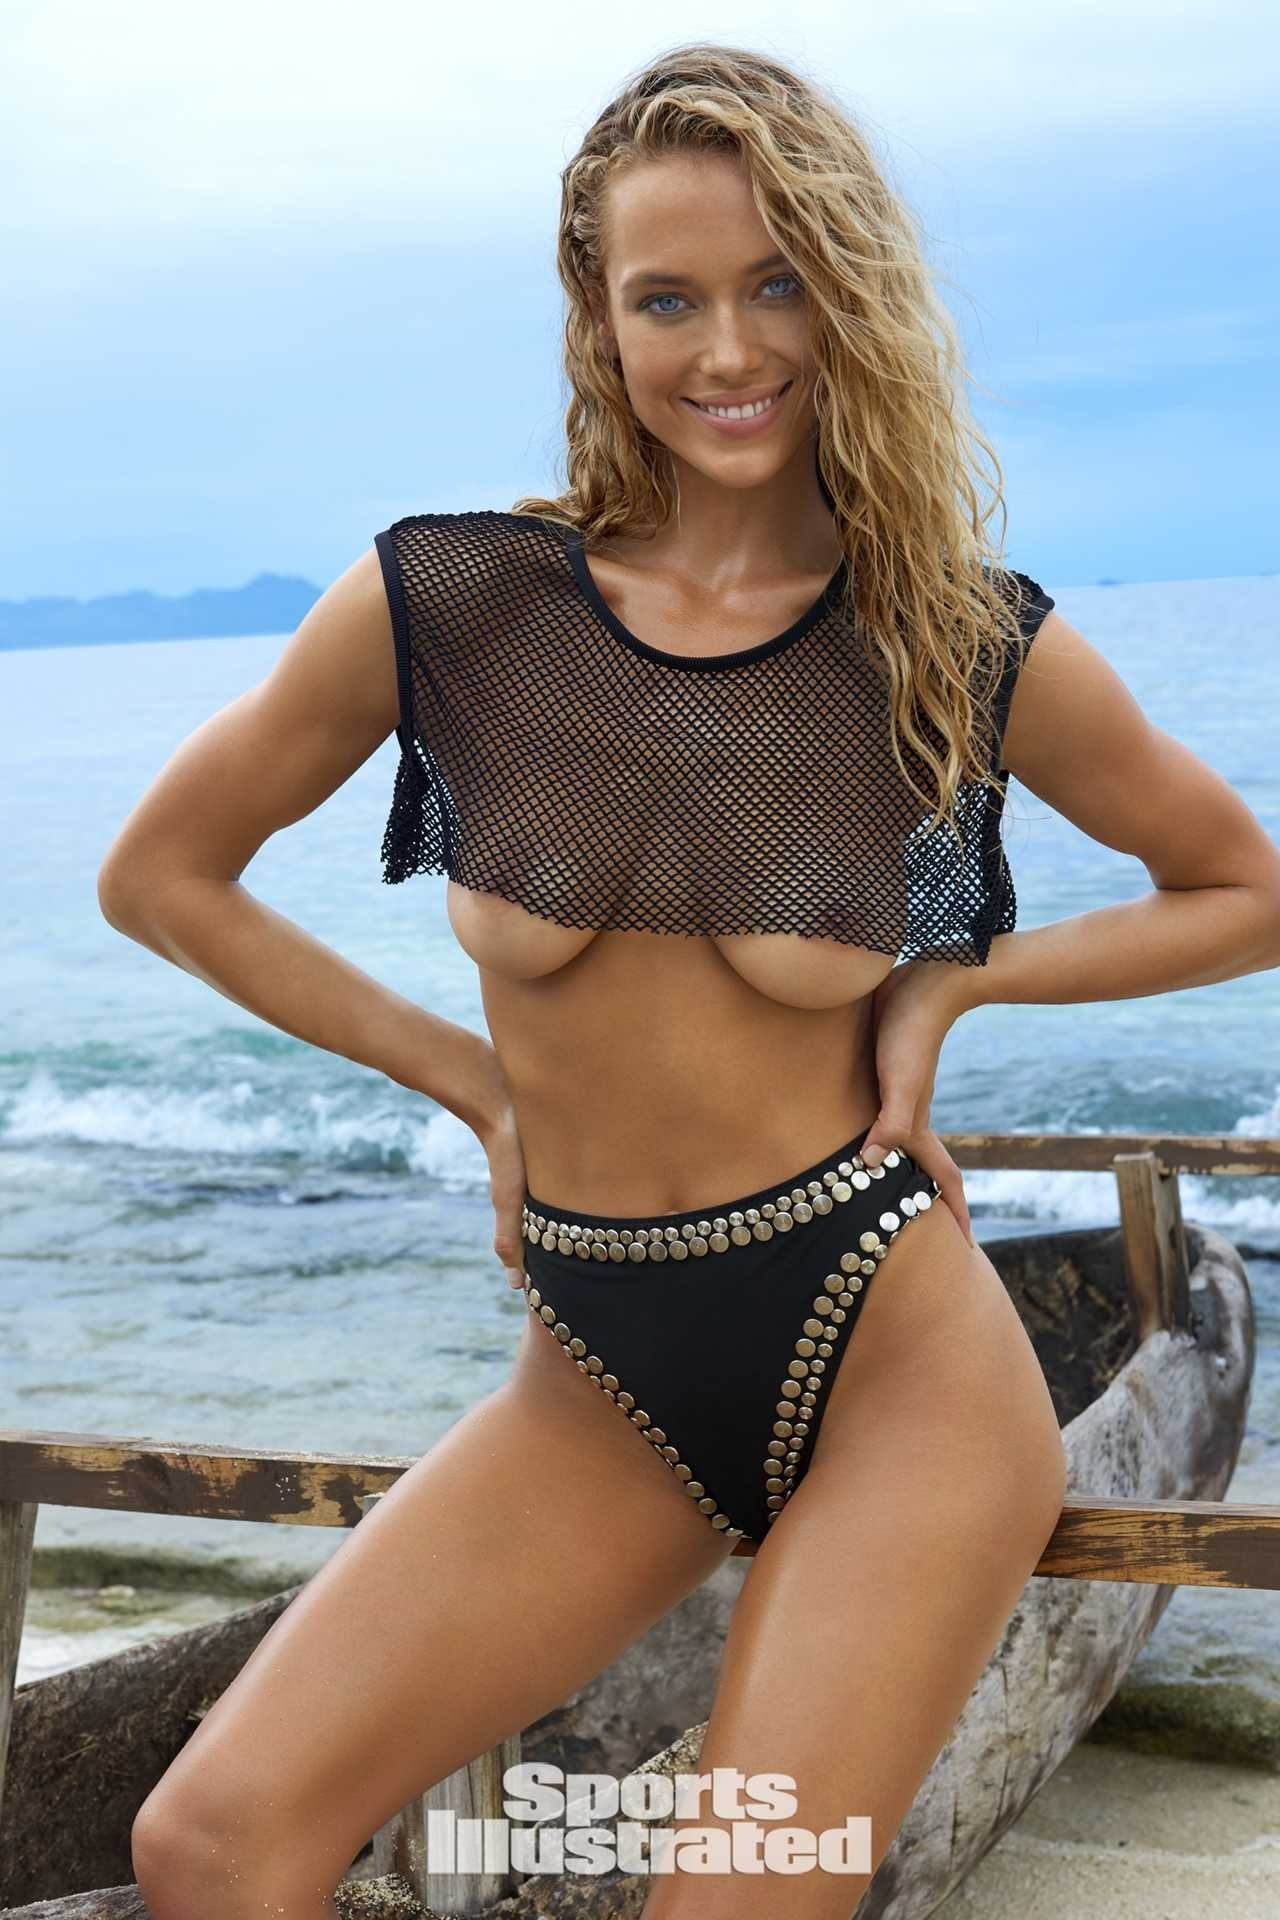 Hannah Ferguson Sports Illustrated Photoshoot Hannah Ferguson